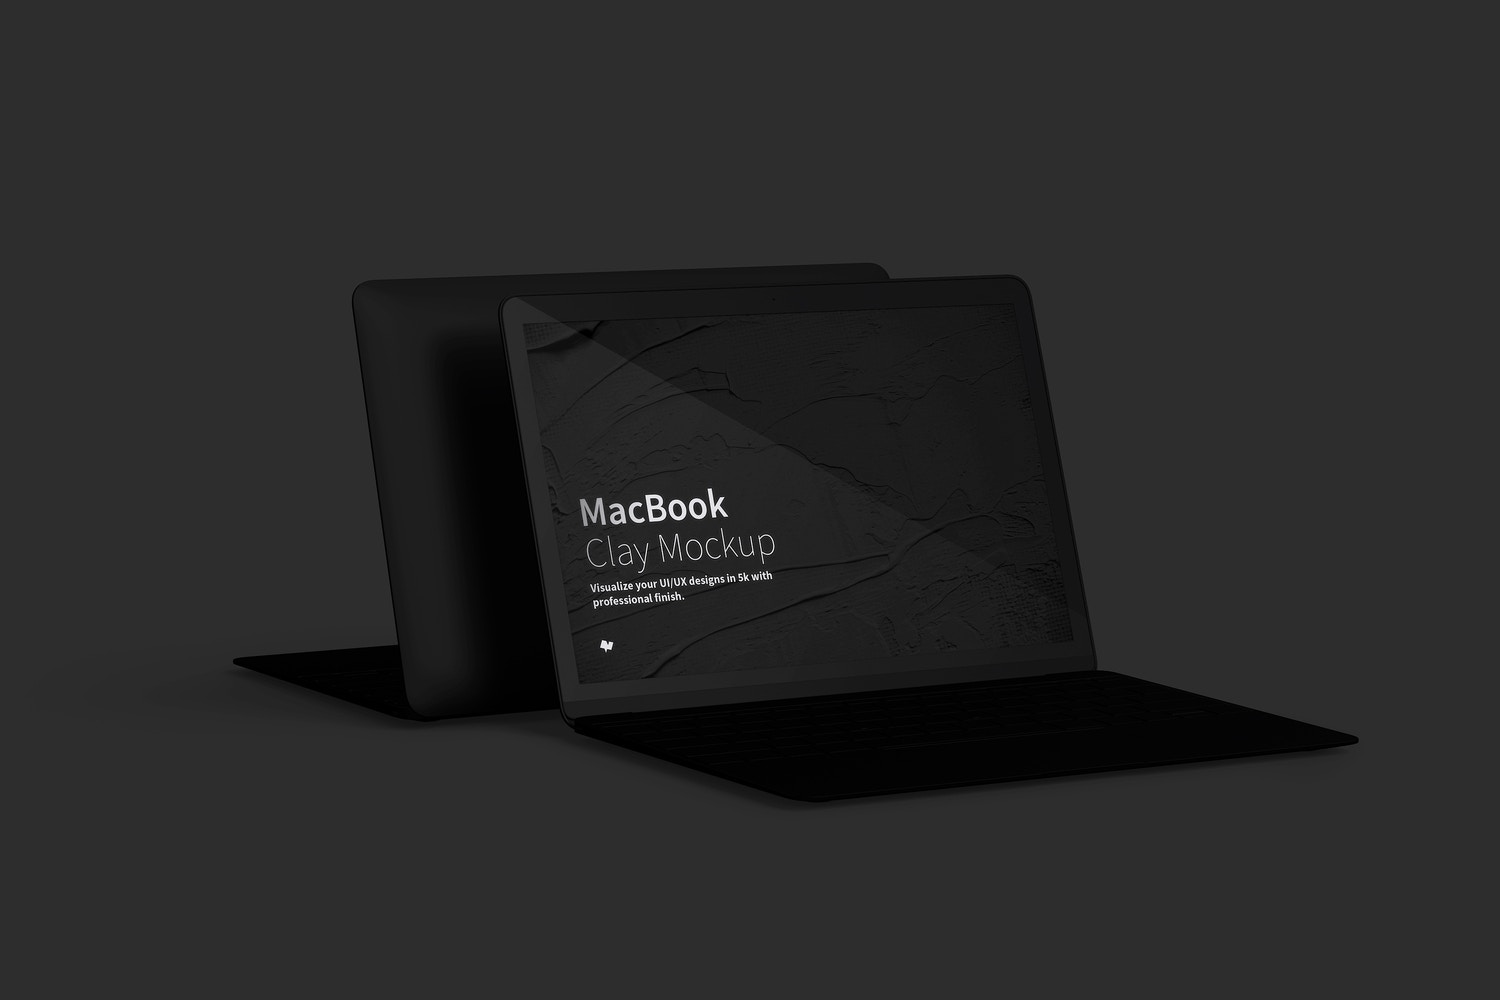 Clay MacBook Mockup (5) by Original Mockups on Original Mockups